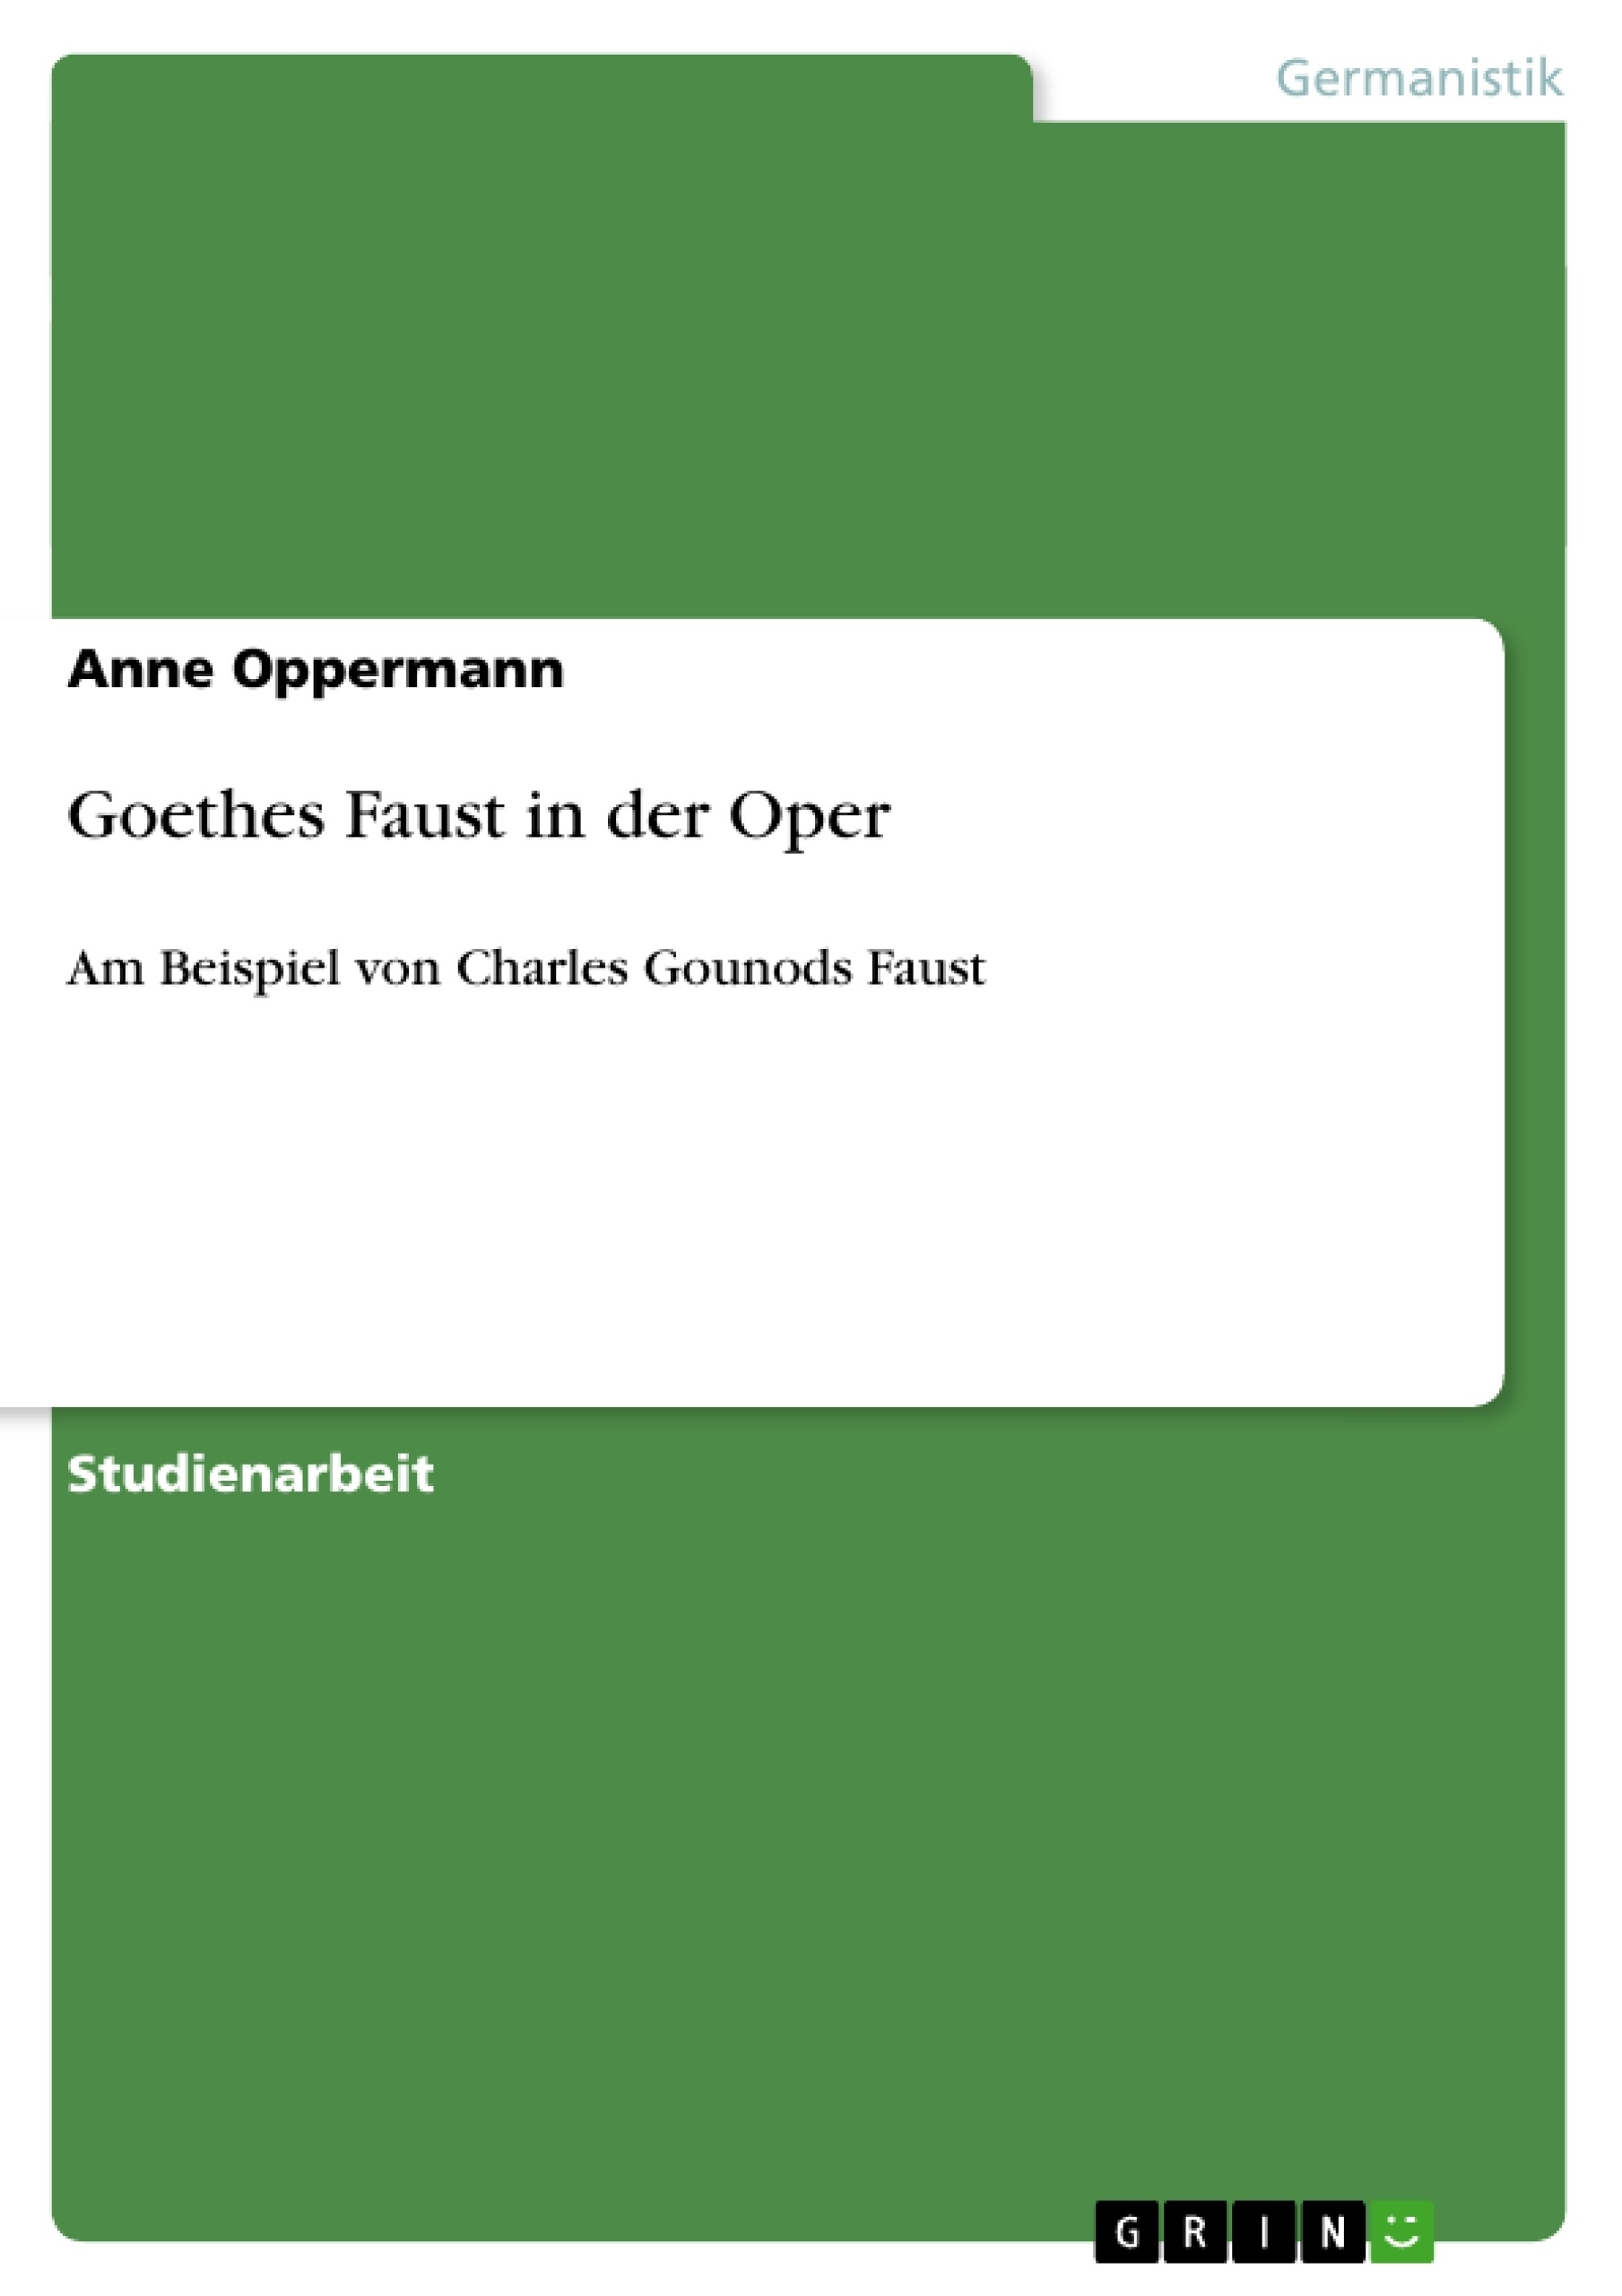 thoughts on goethes faust essay Goethe's plotting essay which had been a goal of the faust of german and english tradition, goethe's faust seeks experience and feeling.